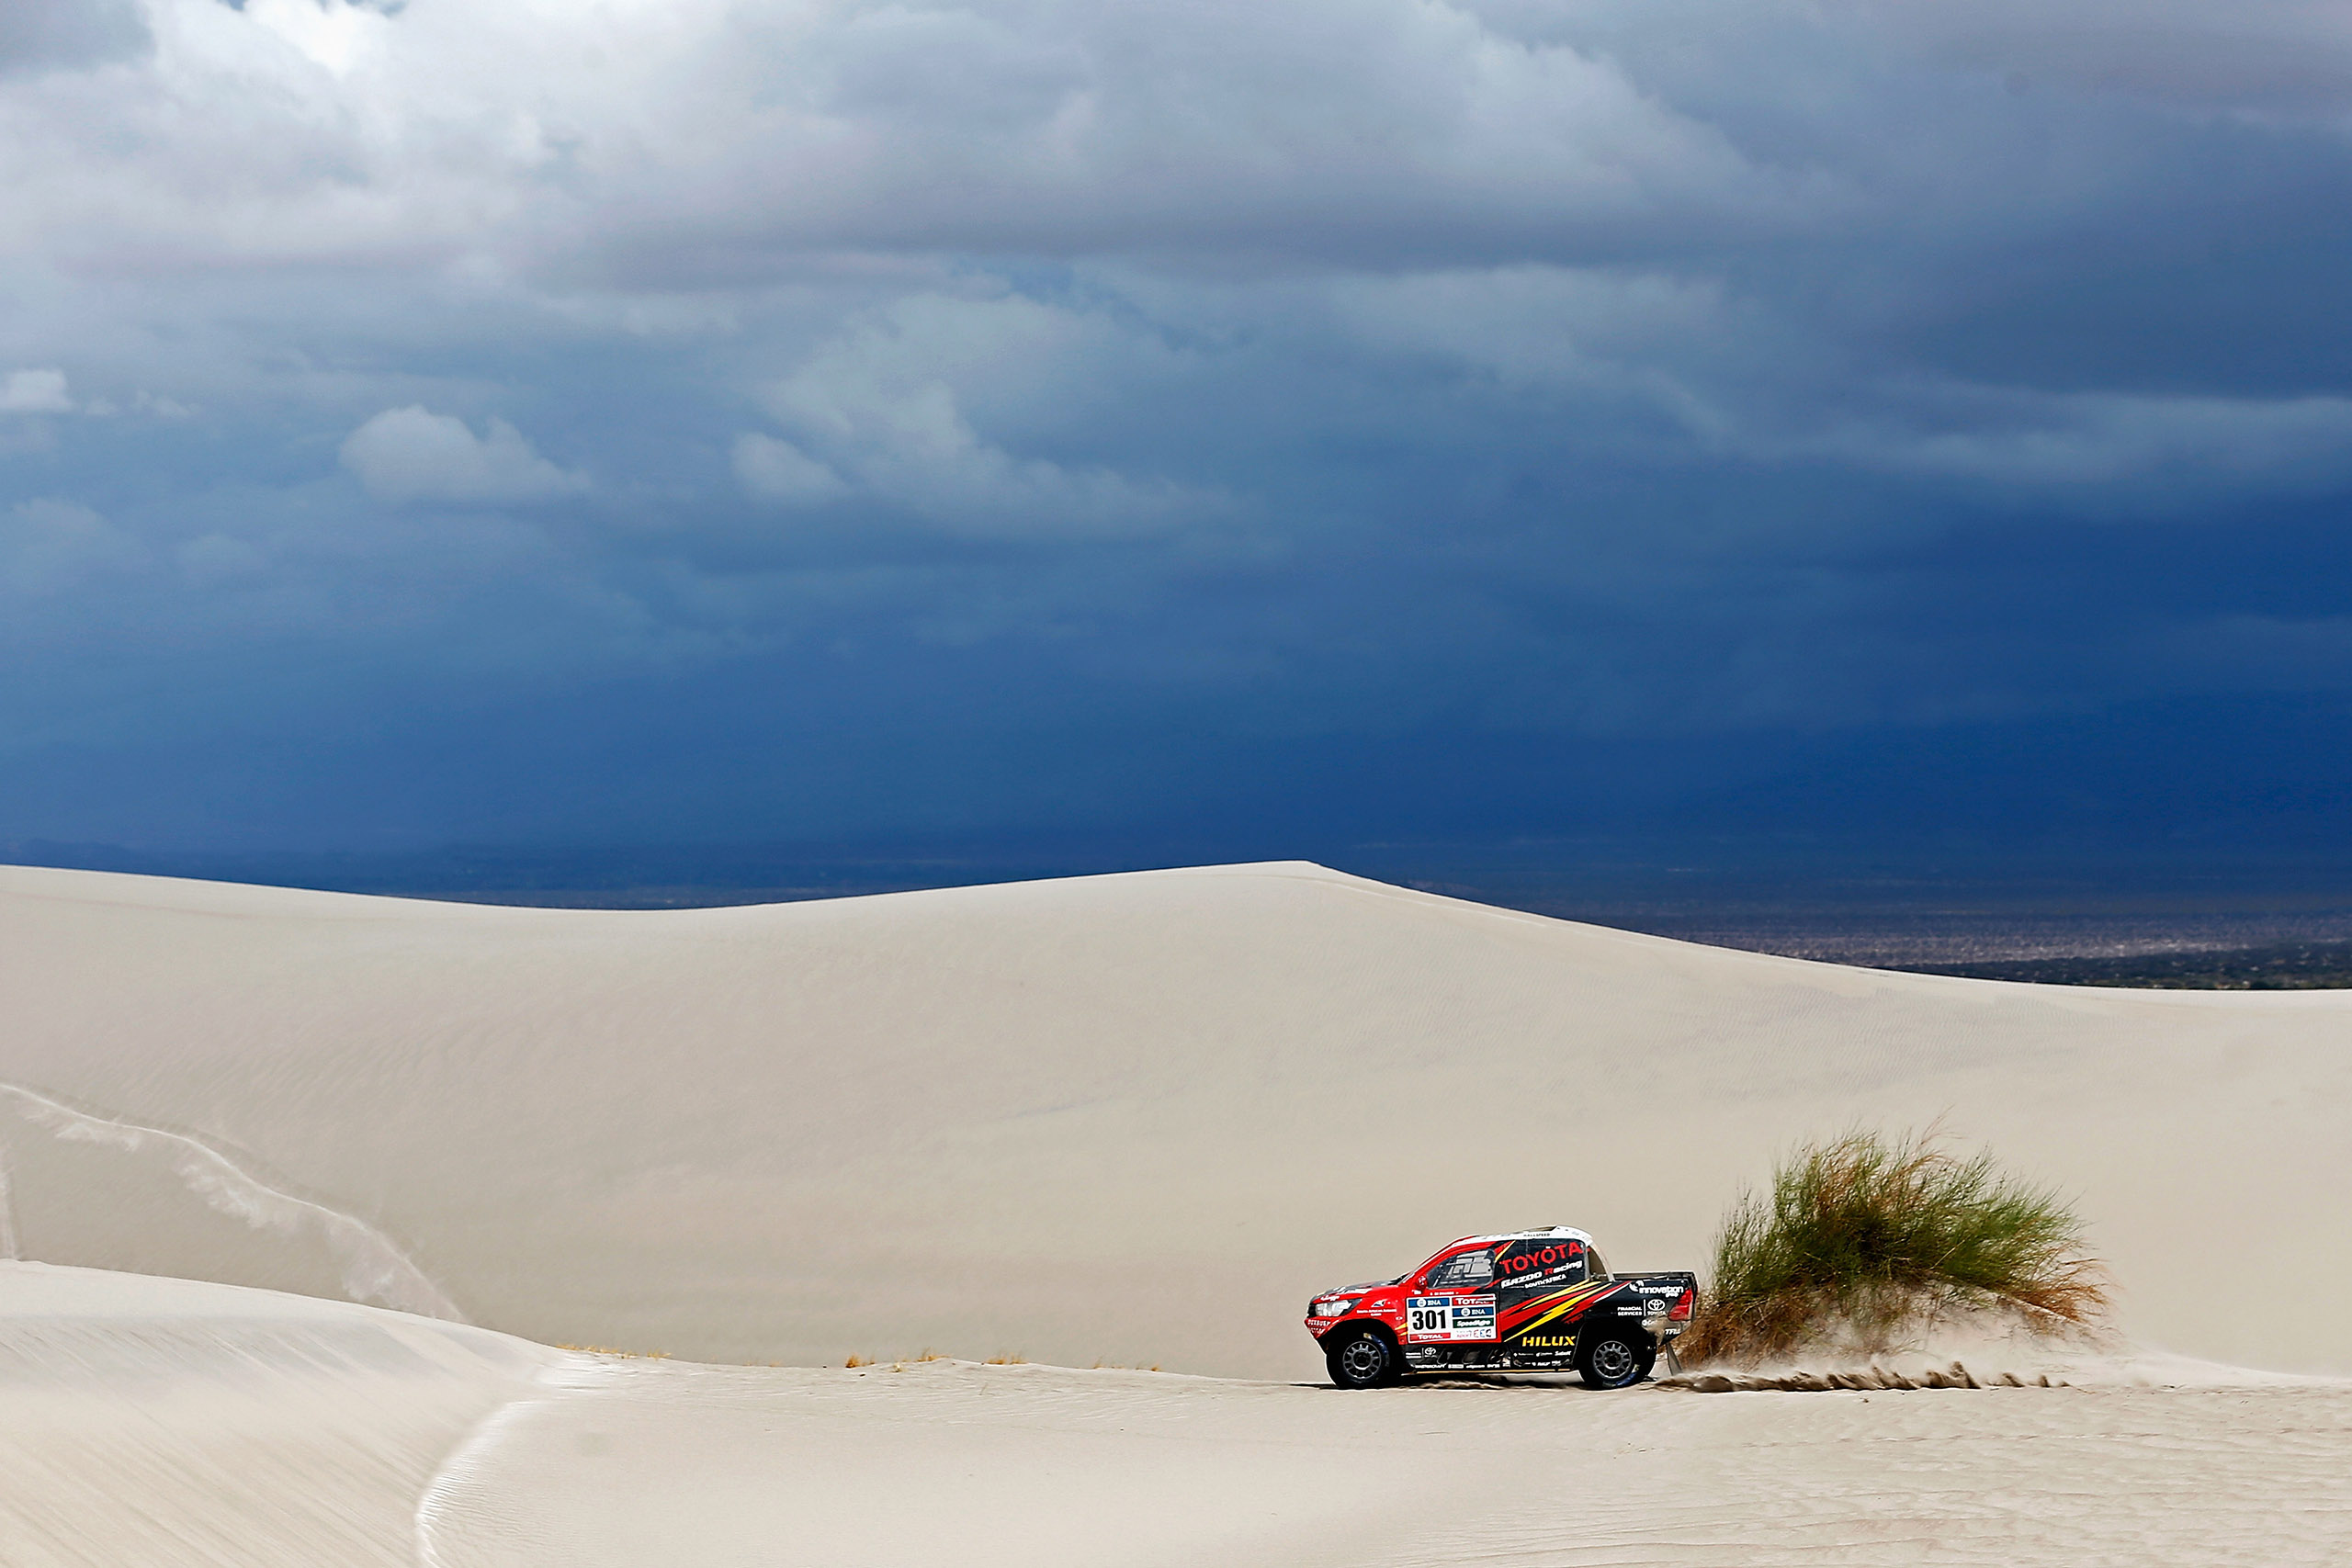 Giniel De Villiers of South Africa and Dirk Von Zitzewitz of Germany in the Toyota Hilux for Toyota Gazoo Racing compete on day 11 stage ten between Belen and La Rioja during the 2016 Dakar Rally on Jan. 13, 2016 in near Fiambala, Argentina.